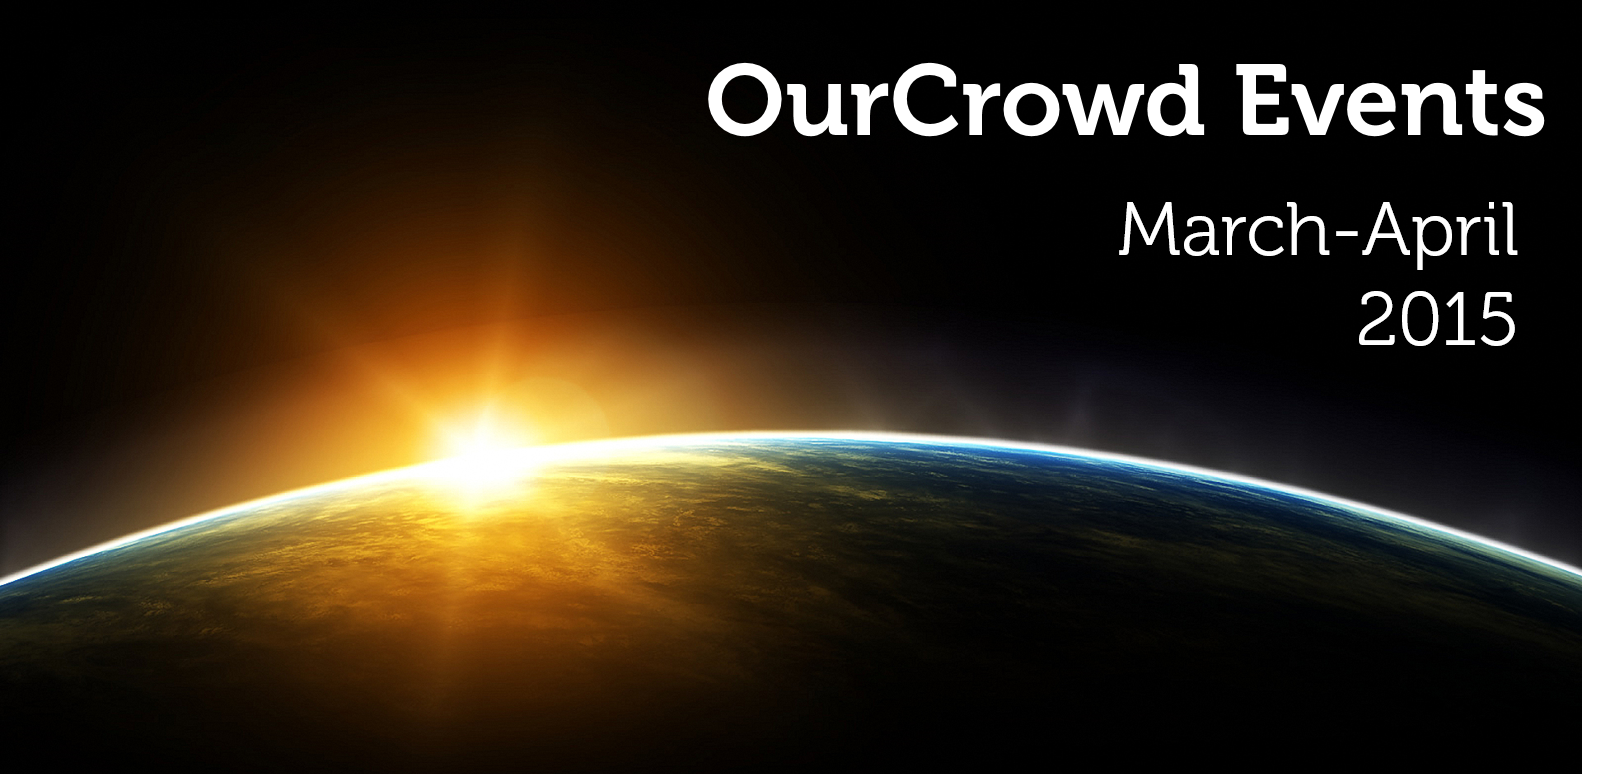 OurCrowd Events March-April 2015